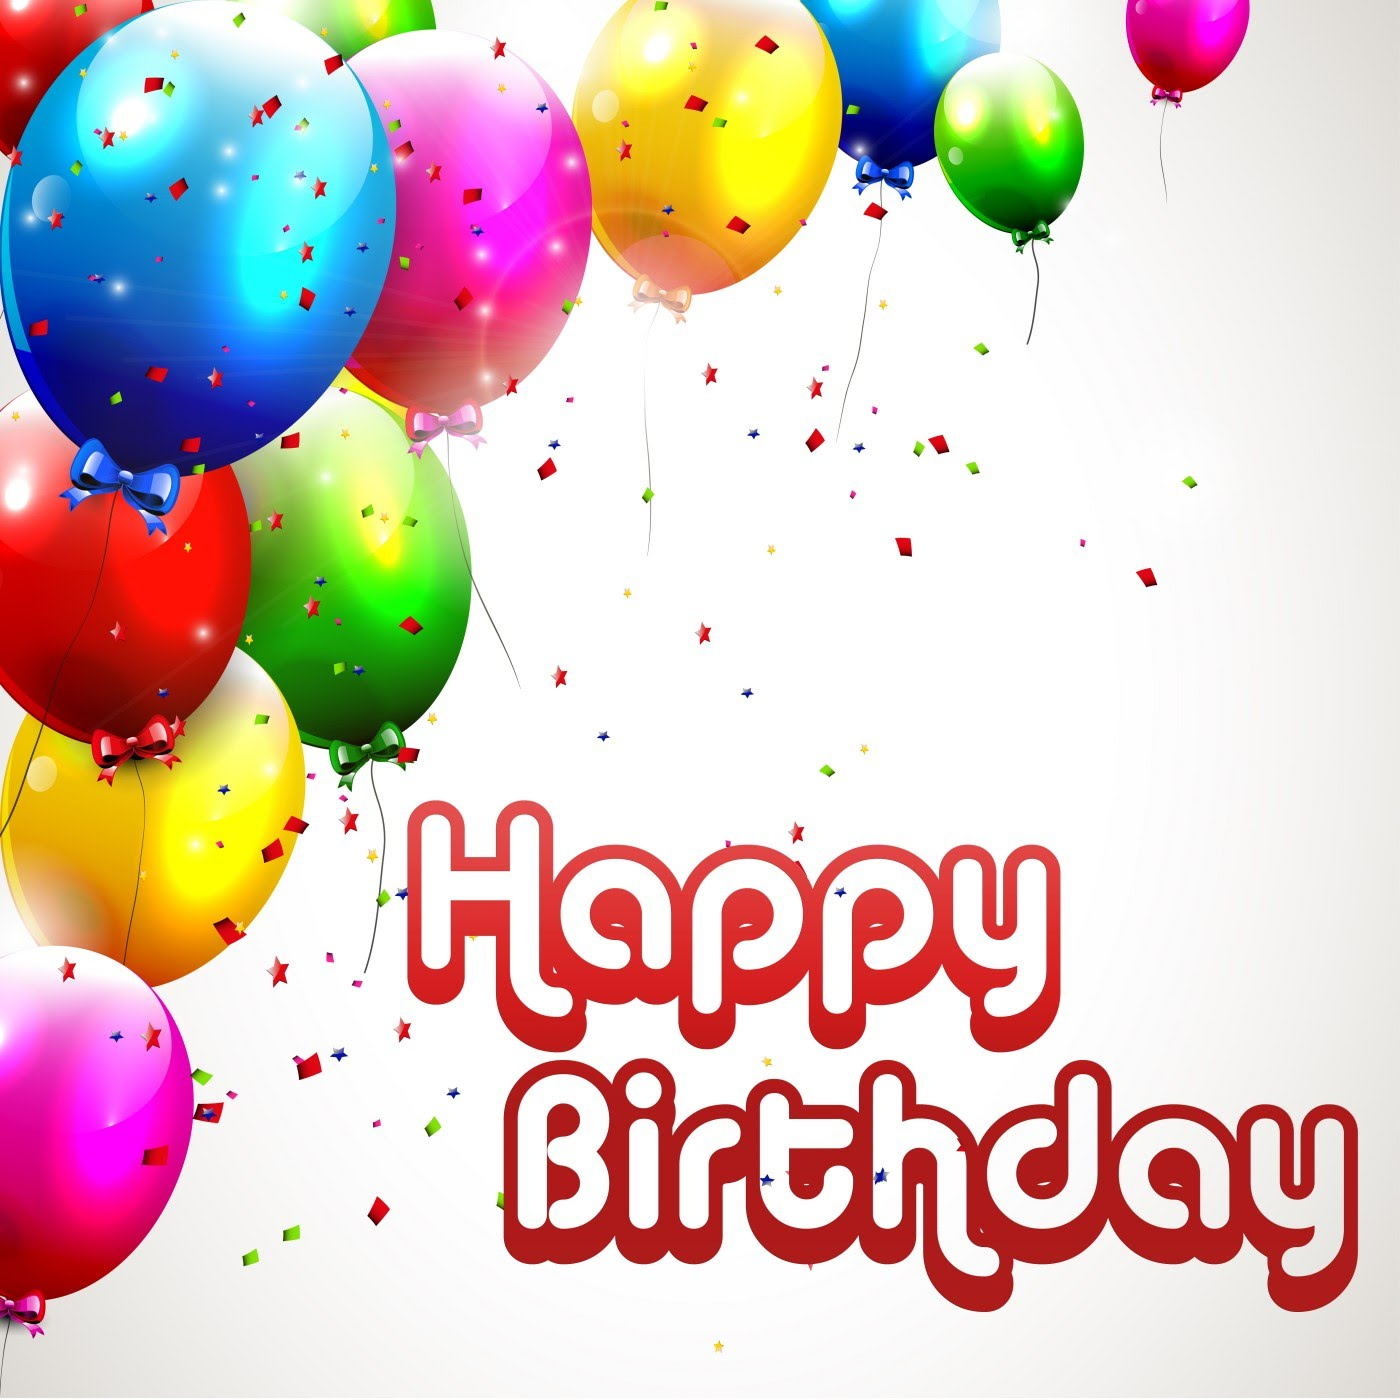 happy birthday to you i wish you all the best ; maxresdefault